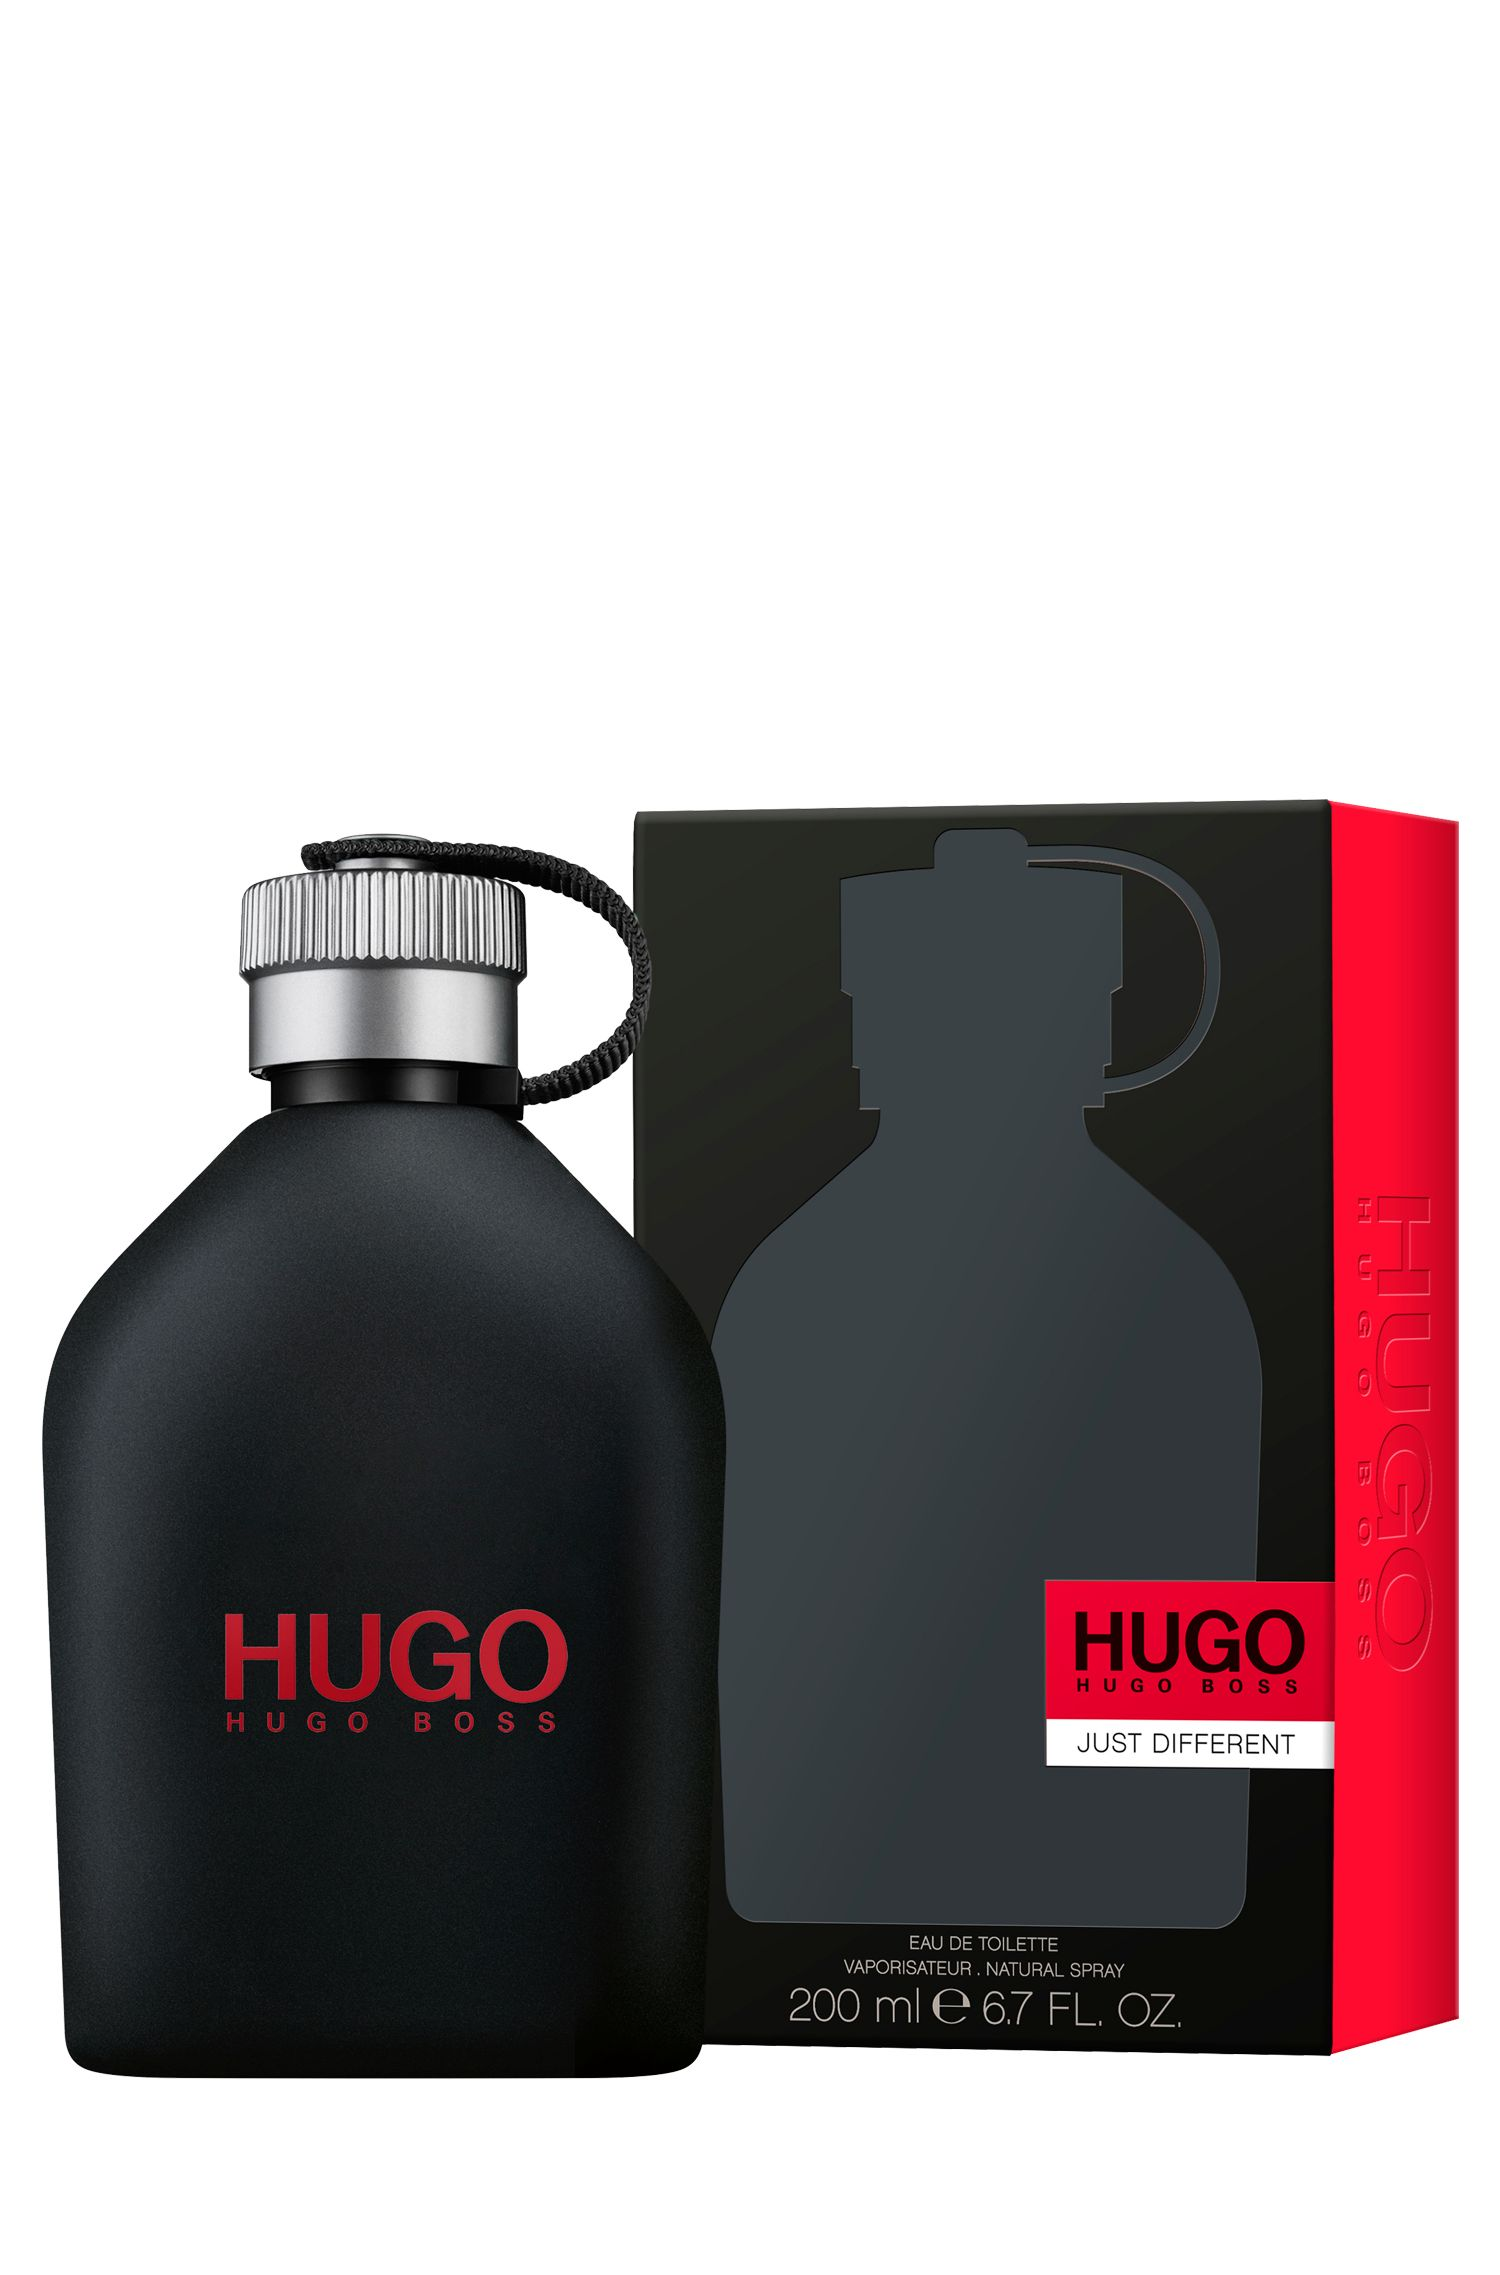 Eau de Toilette HUGO Just Different, 200 ml